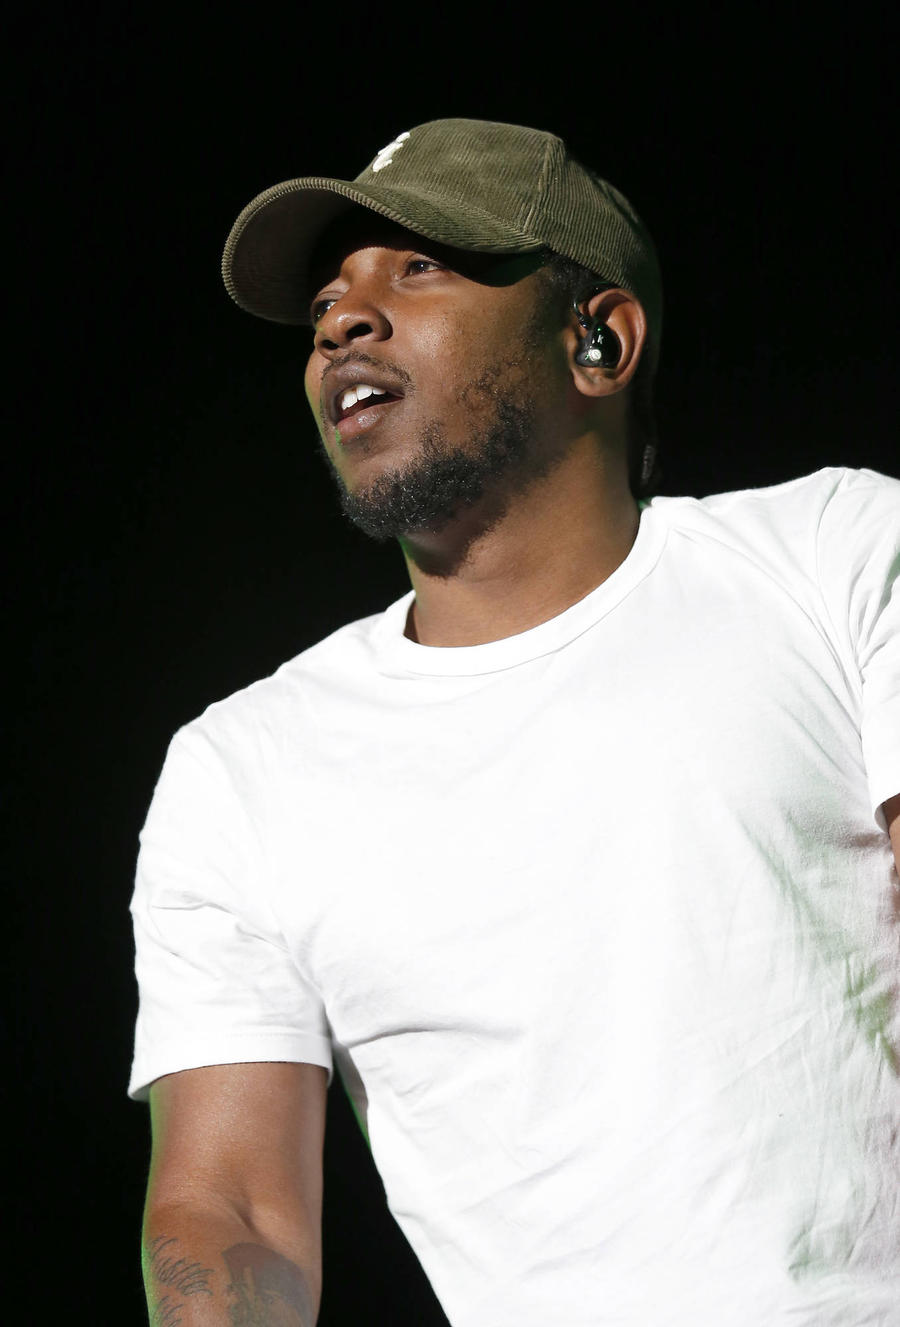 Kendrick Lamar To Induct Heroes N.w.a. Into Hall Of Fame